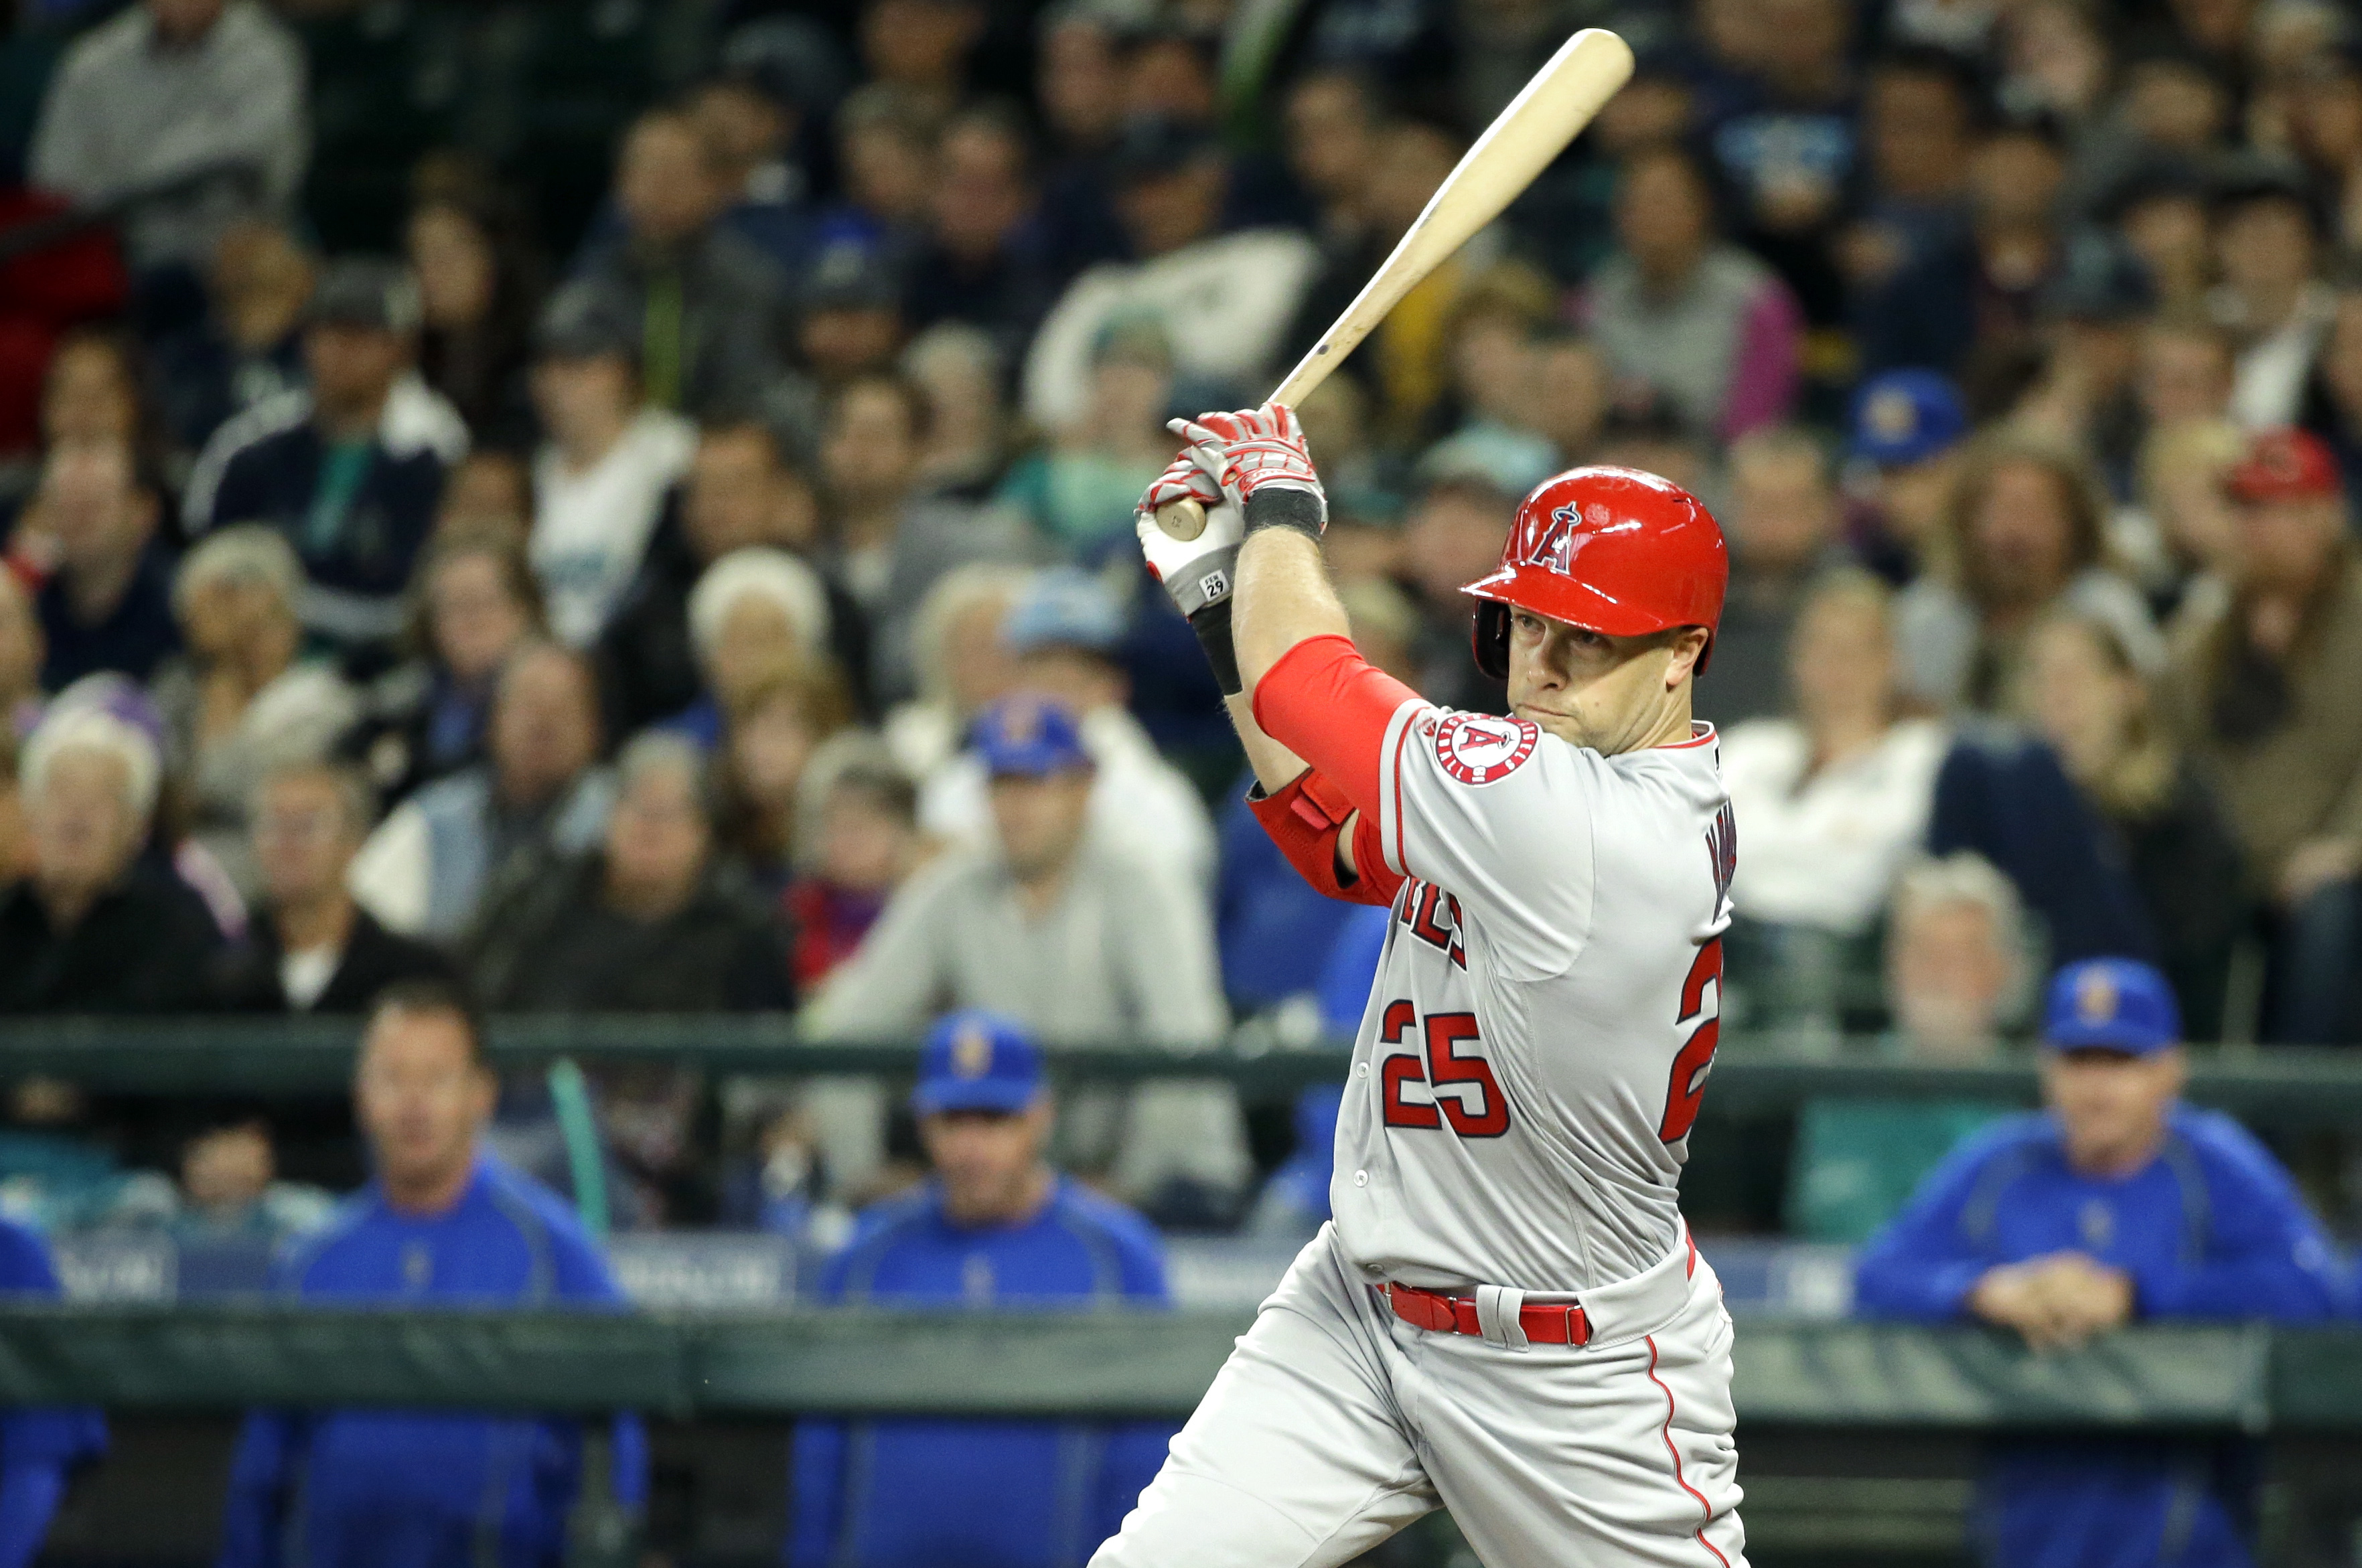 Los Angeles Angels' Daniel Nava hits a two-run single in the eighth inning of a baseball game against the Seattle Mariners, Sunday, May 15, 2016, in Seattle. (AP Photo/Ted S. Warren)